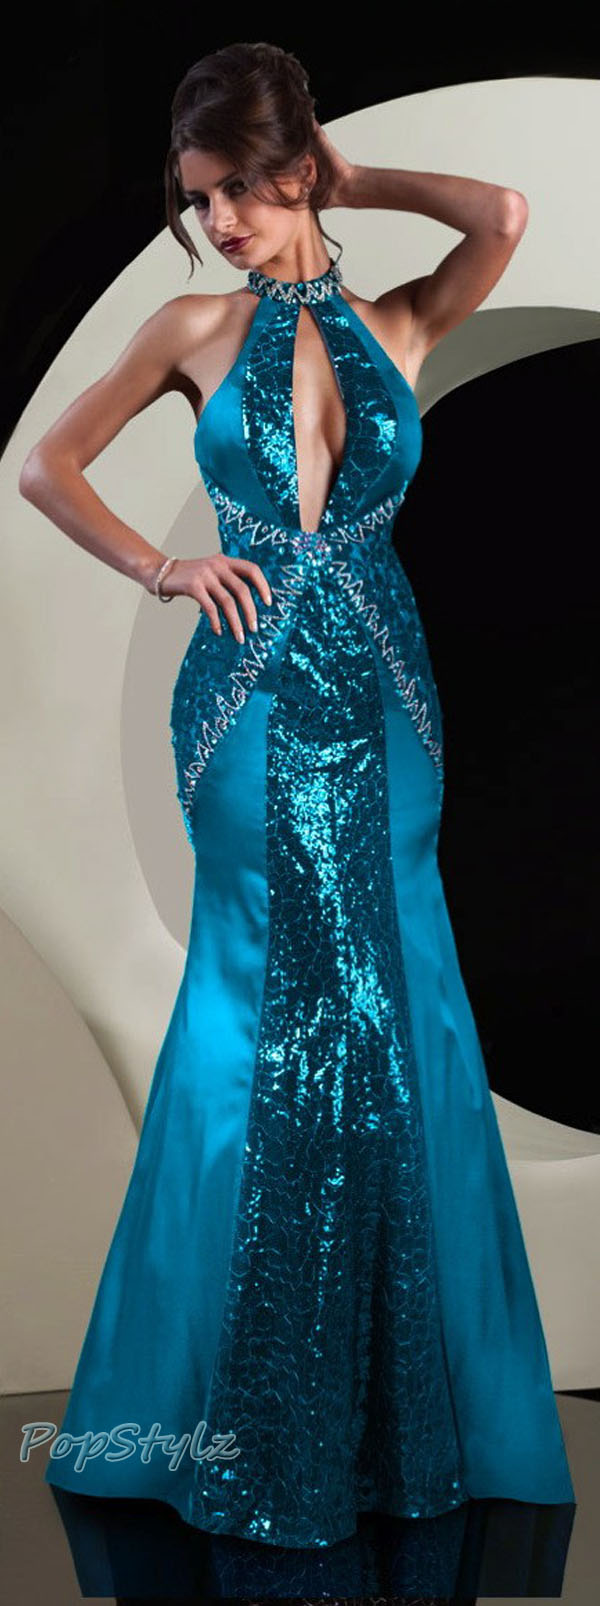 MNM Blue Couture 5746 Dress